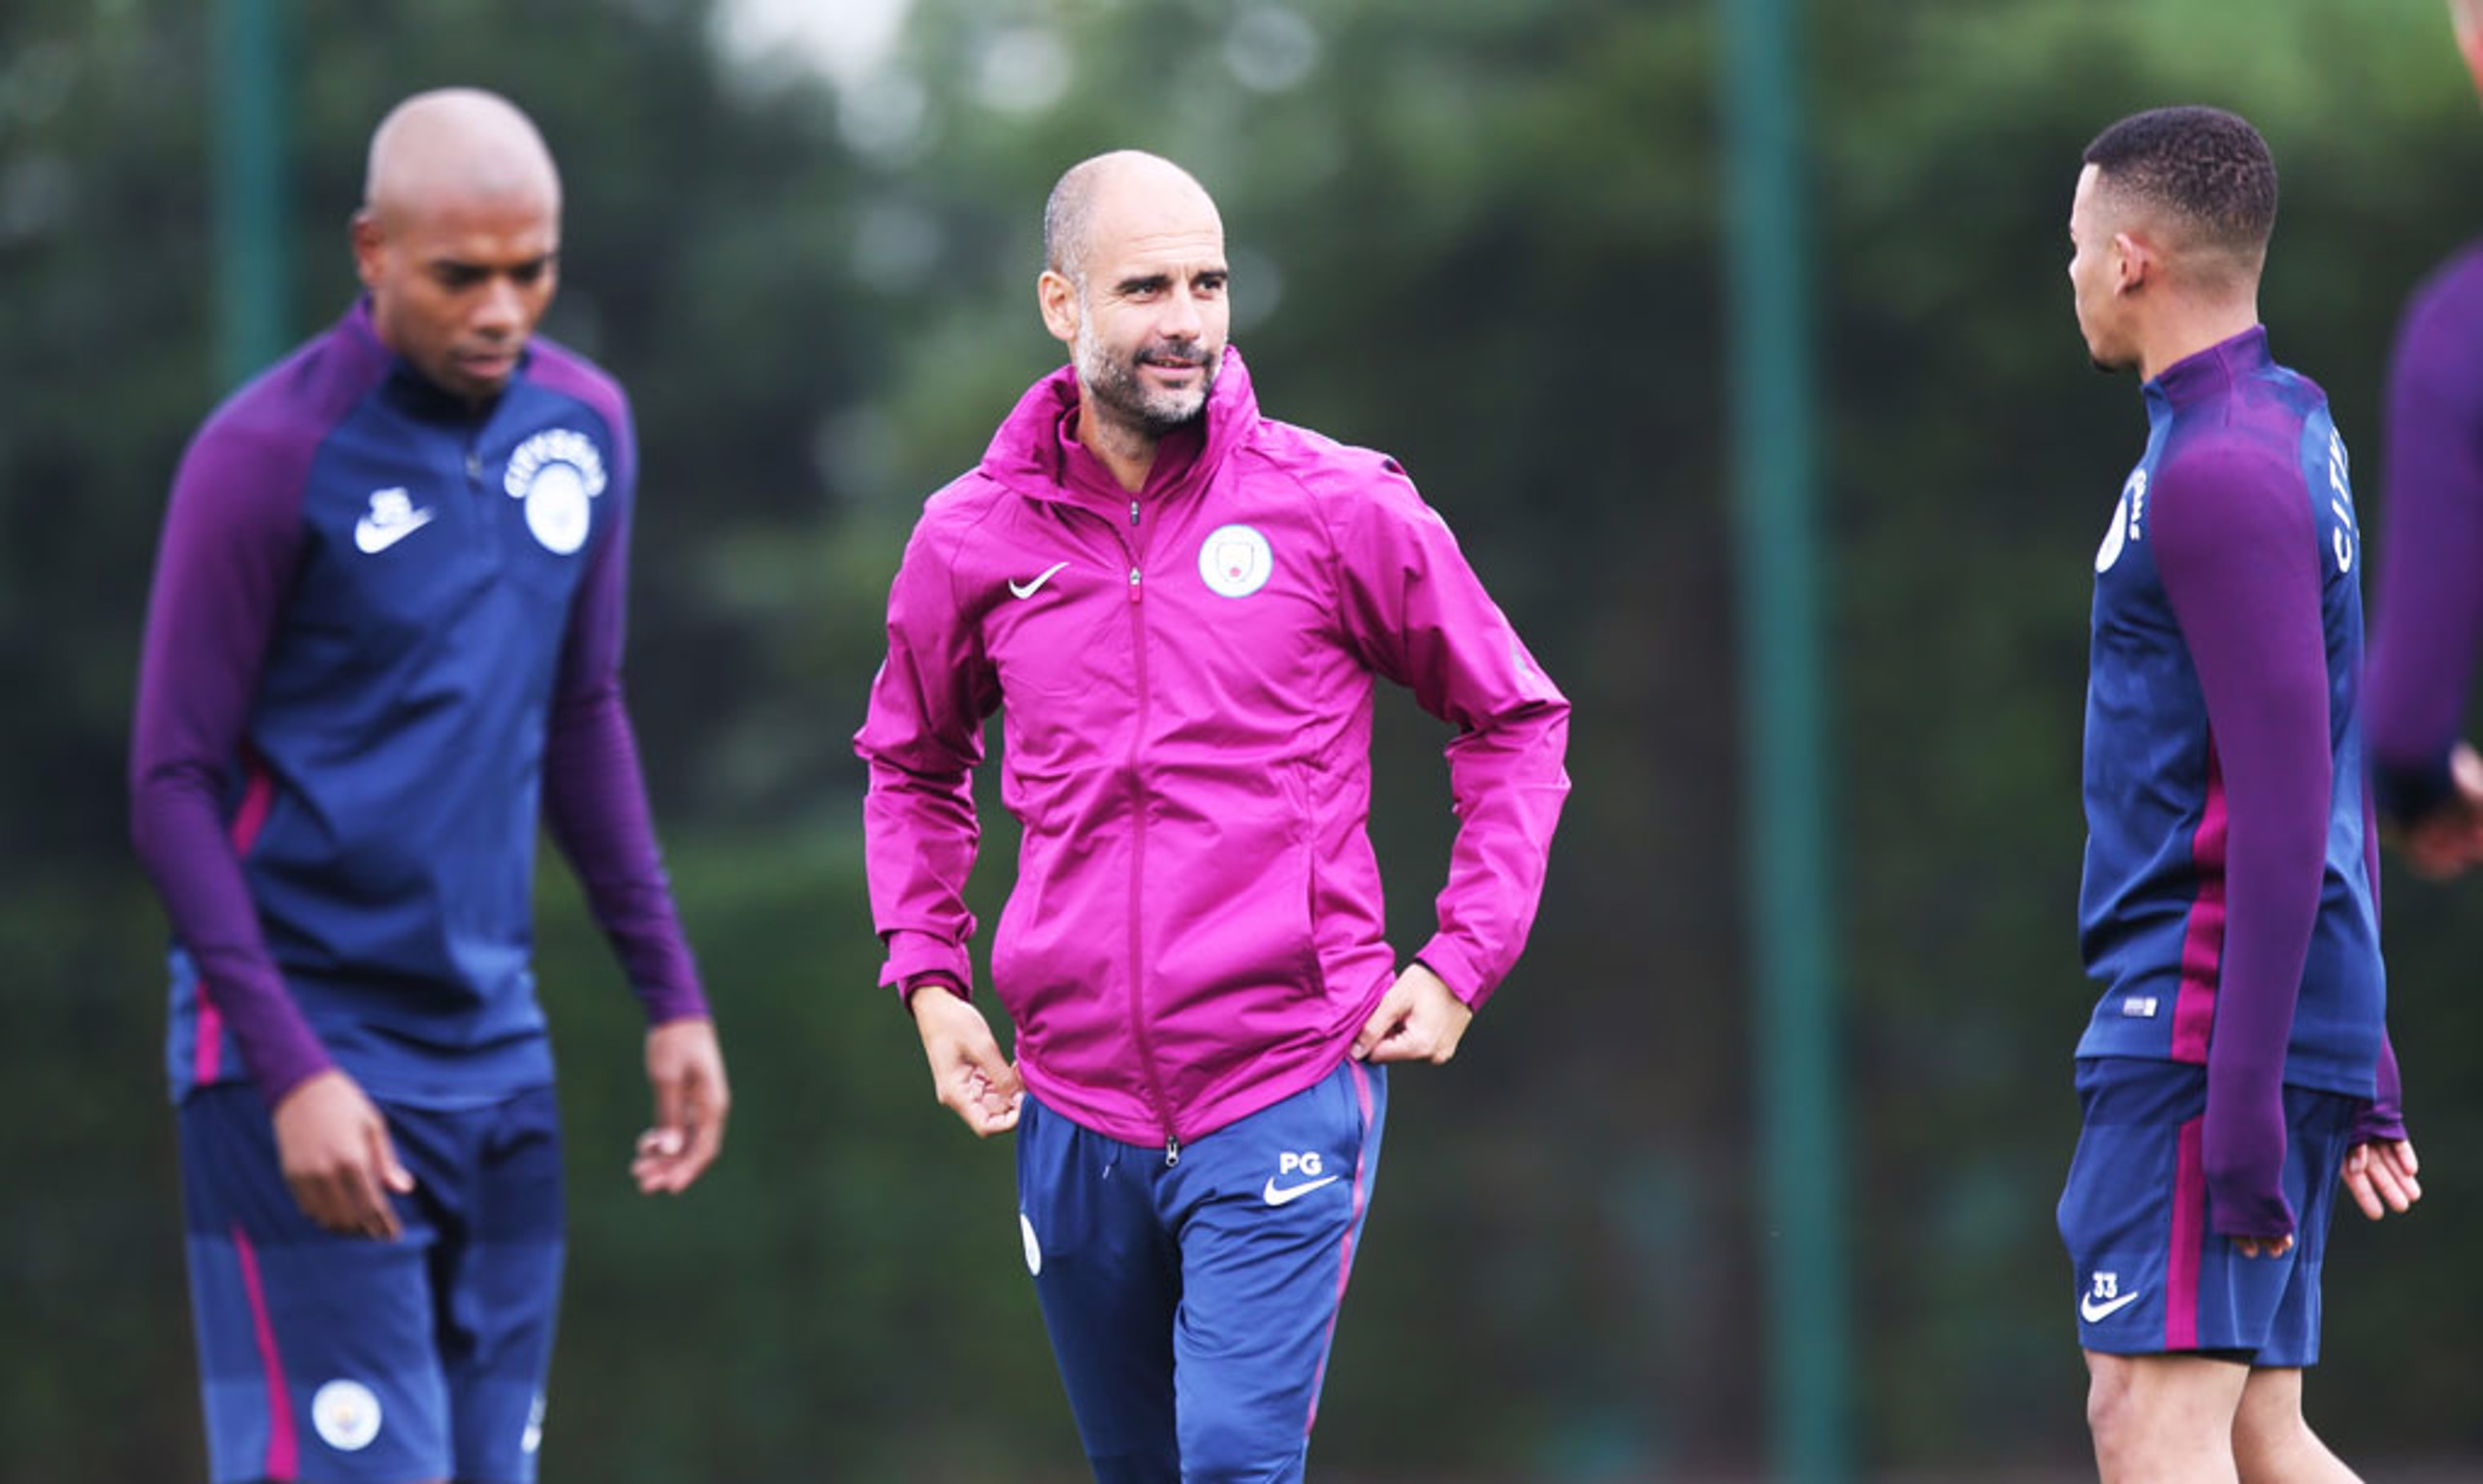 BOSS: Great to see Pep back on the training ground.